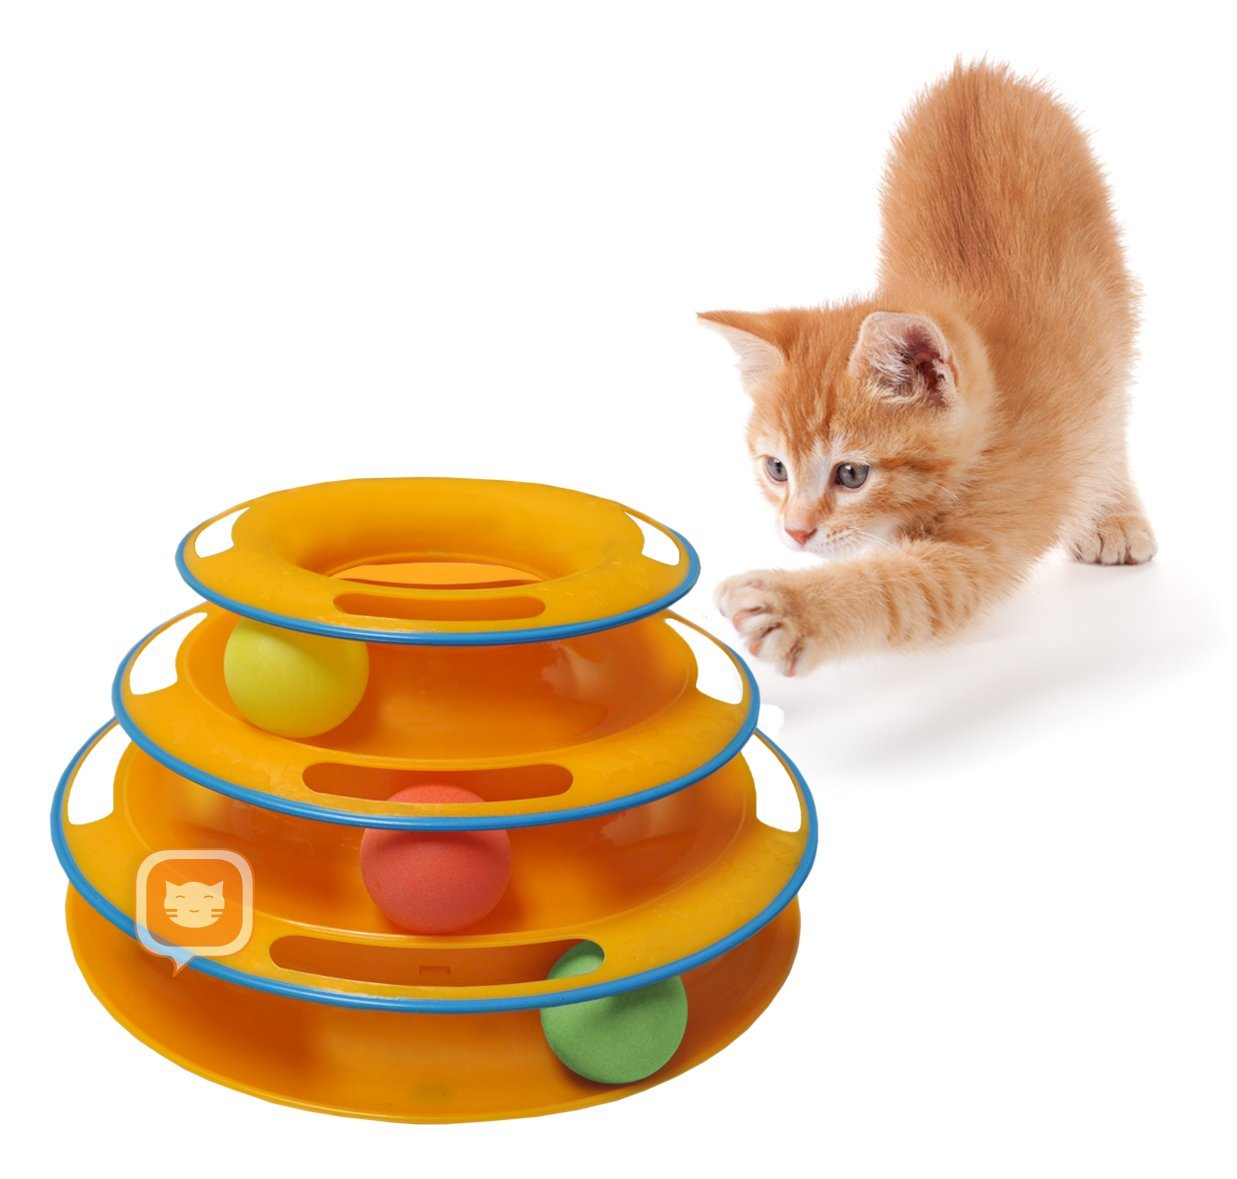 Interactive Cat Toys Are A Great Way To Show Love And